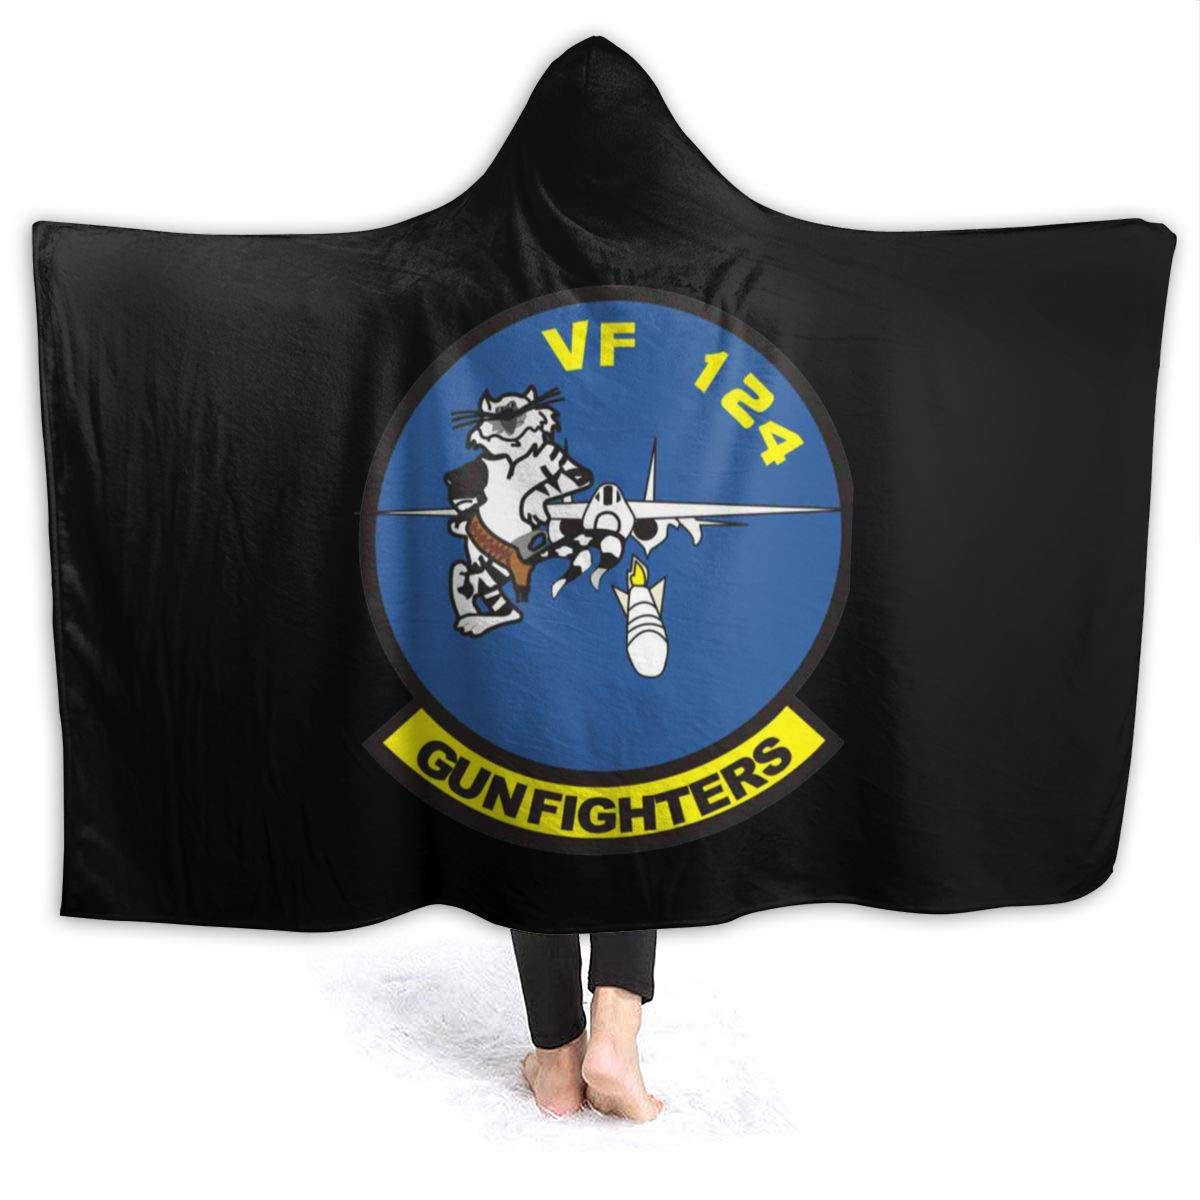 FransisUU US Navy VF-124 Gunfighters Squadron Hooded Blanket, Soft Throw Wrap Wearable Blankets Novelty Cape for Kids Adults Teens by FransisUU